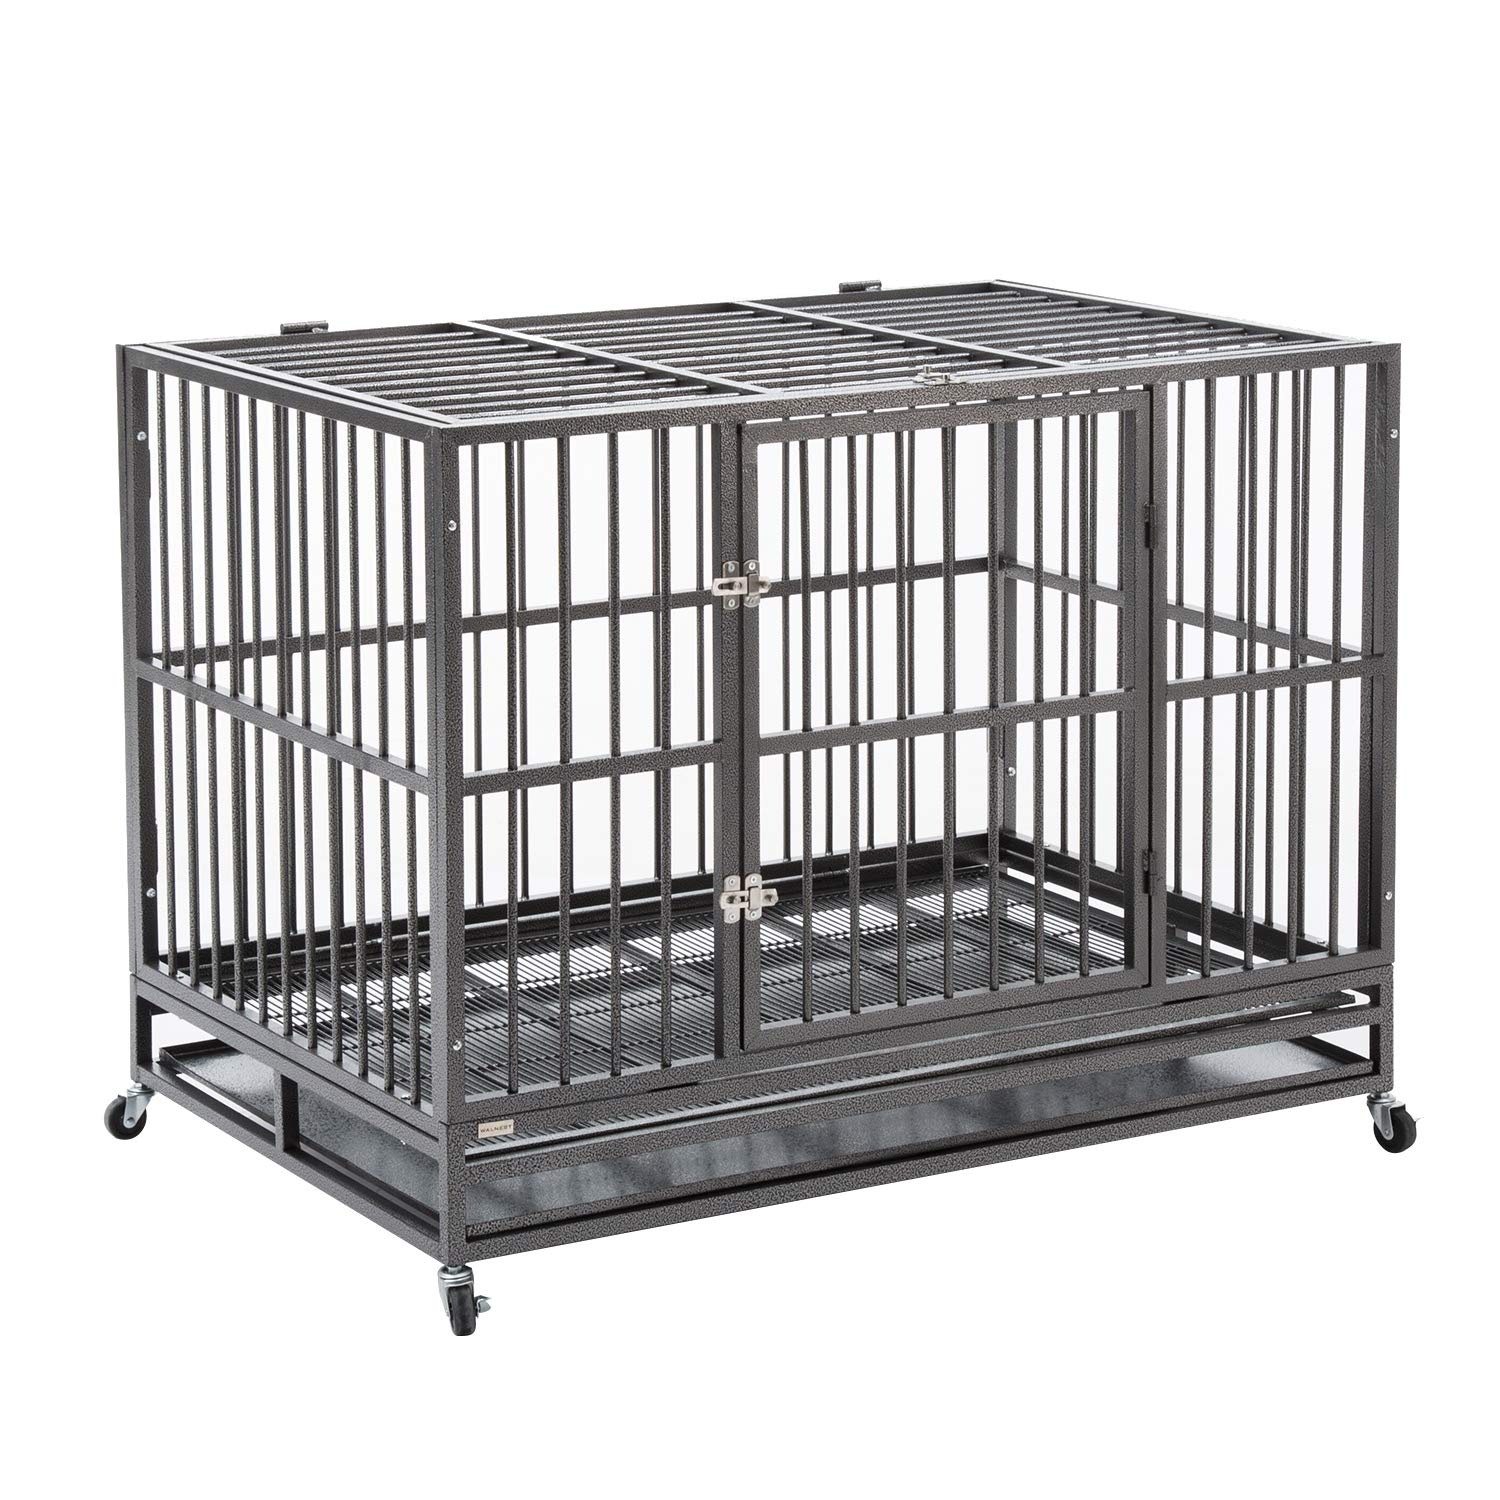 Sliverylake 3XL 48'' Heavy Duty Metal Dog Crate Cage Pet Kennel Playpen Exercise w/ Wheels Tray US by Sliverylake